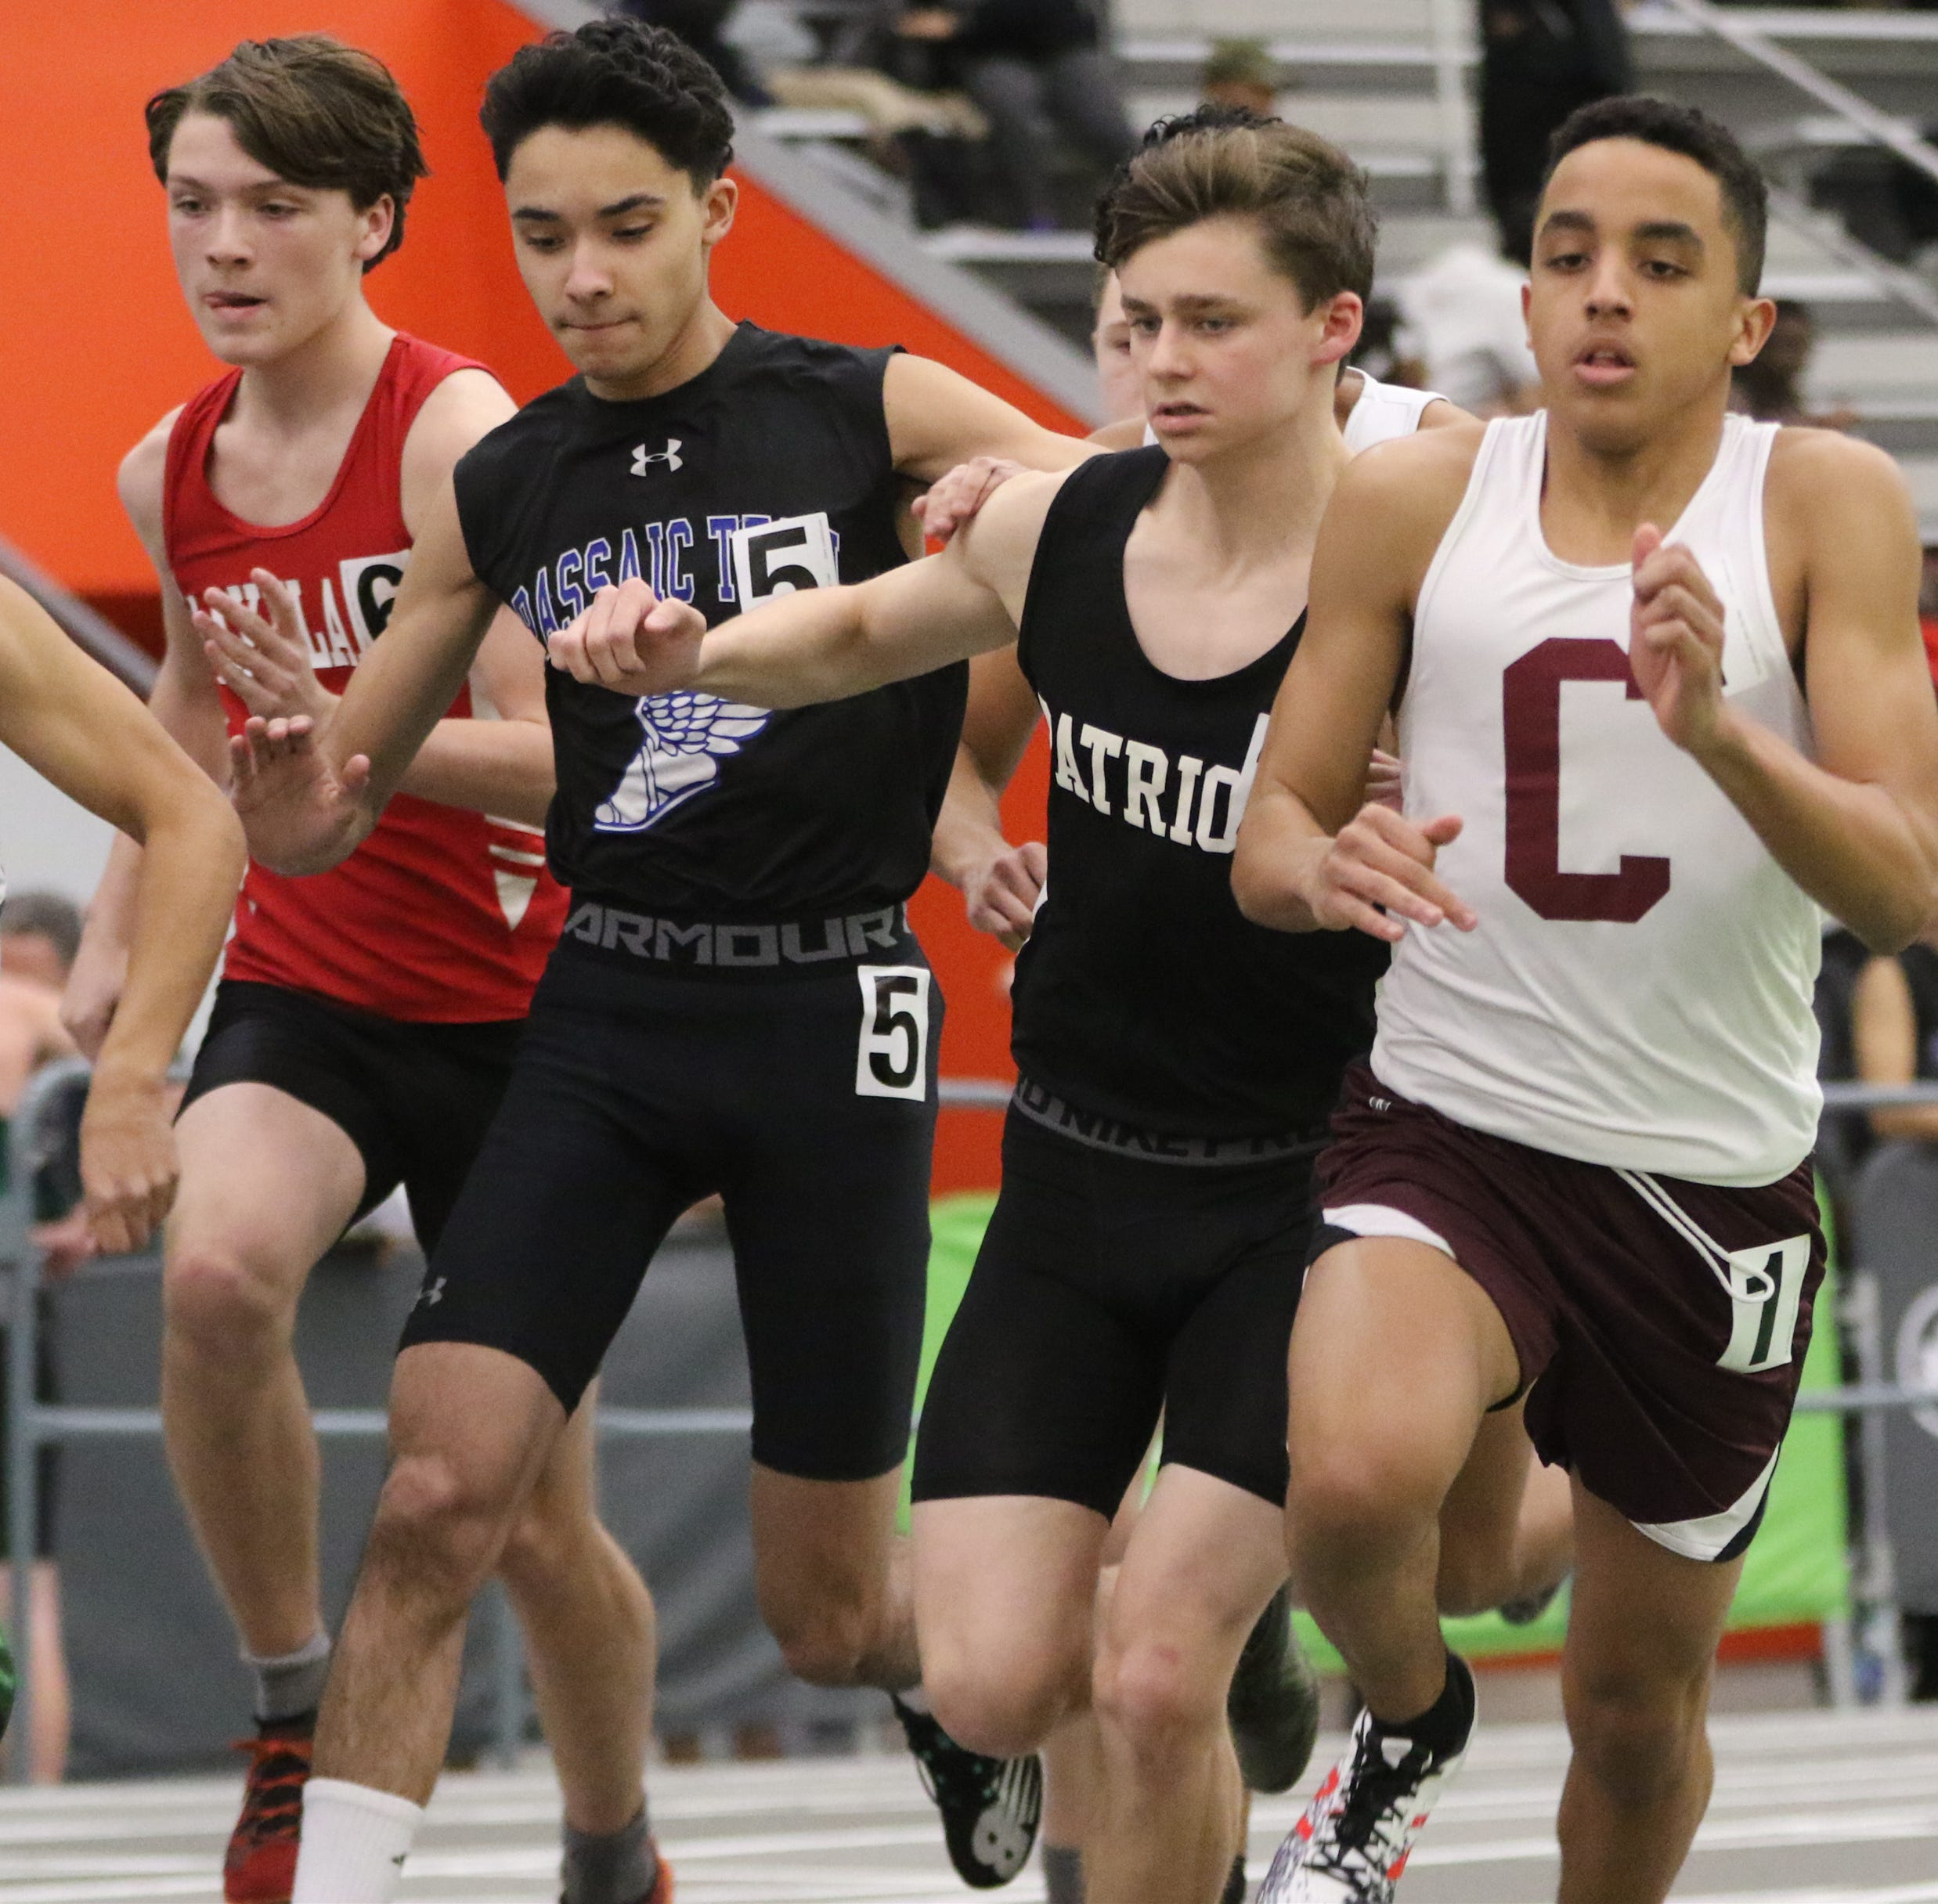 Opinion: NJ needs modern indoor track arena. How about the Meadowlands?